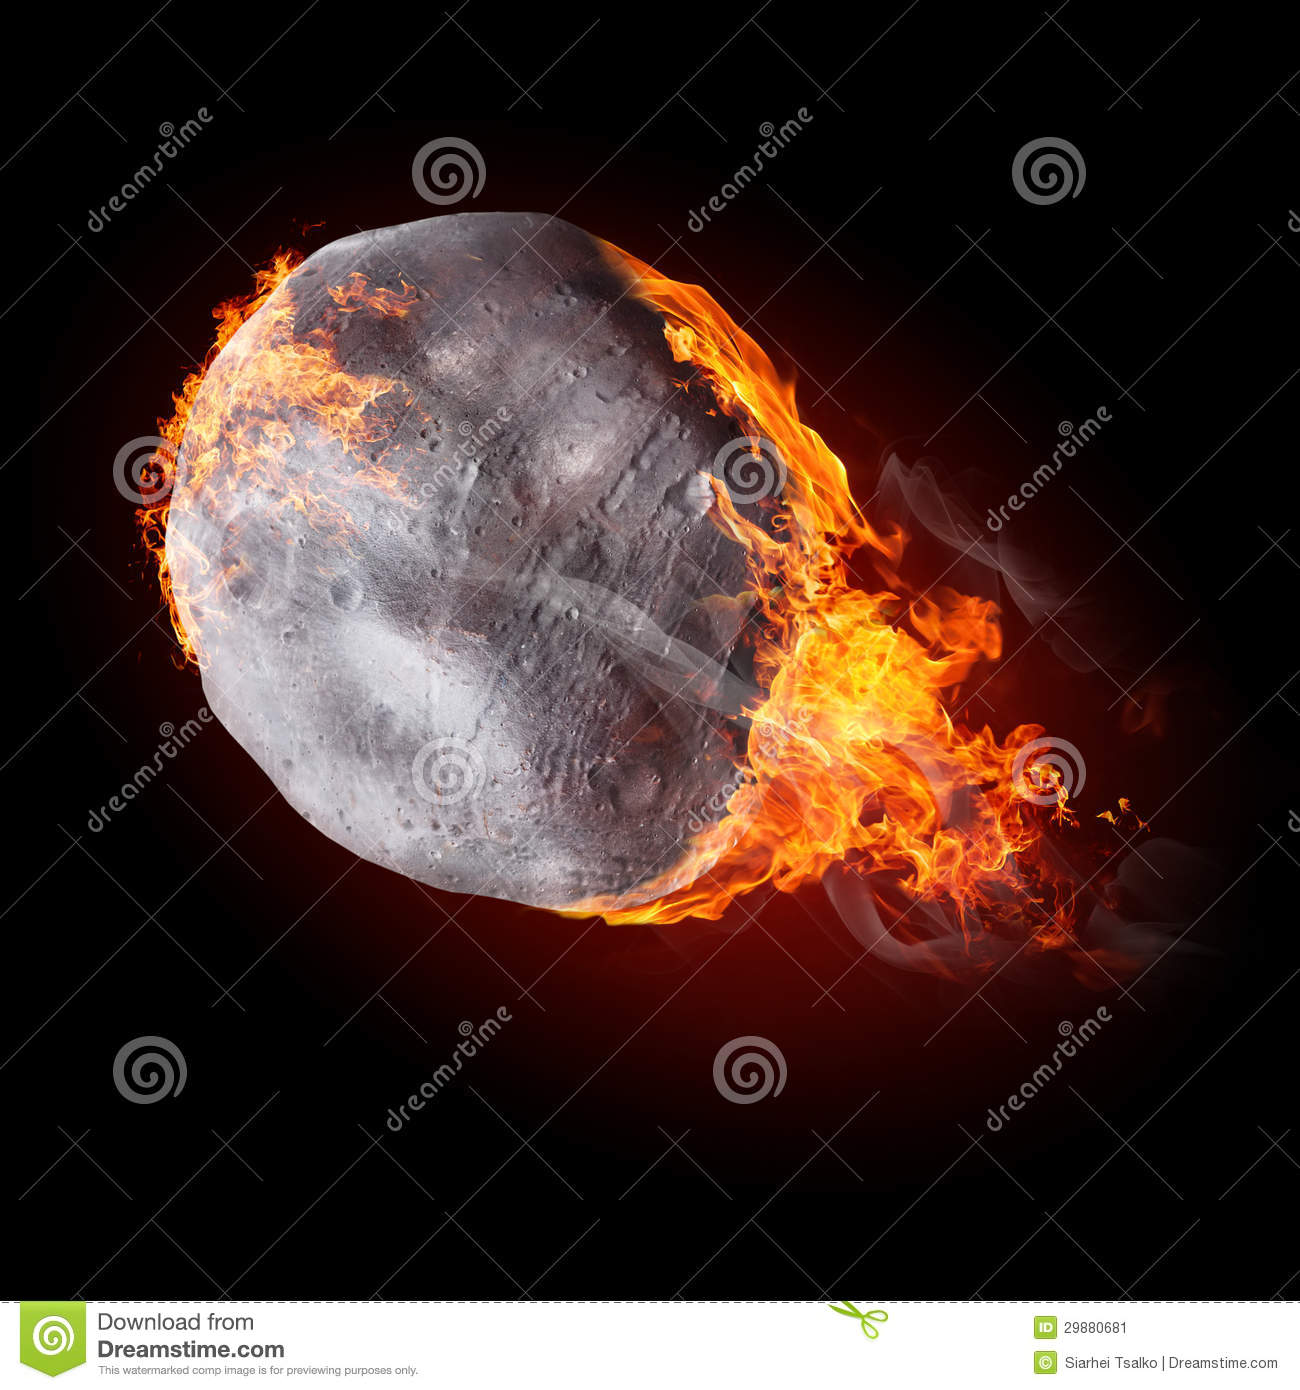 Objects On Fire Stock Image - Image: 29880681